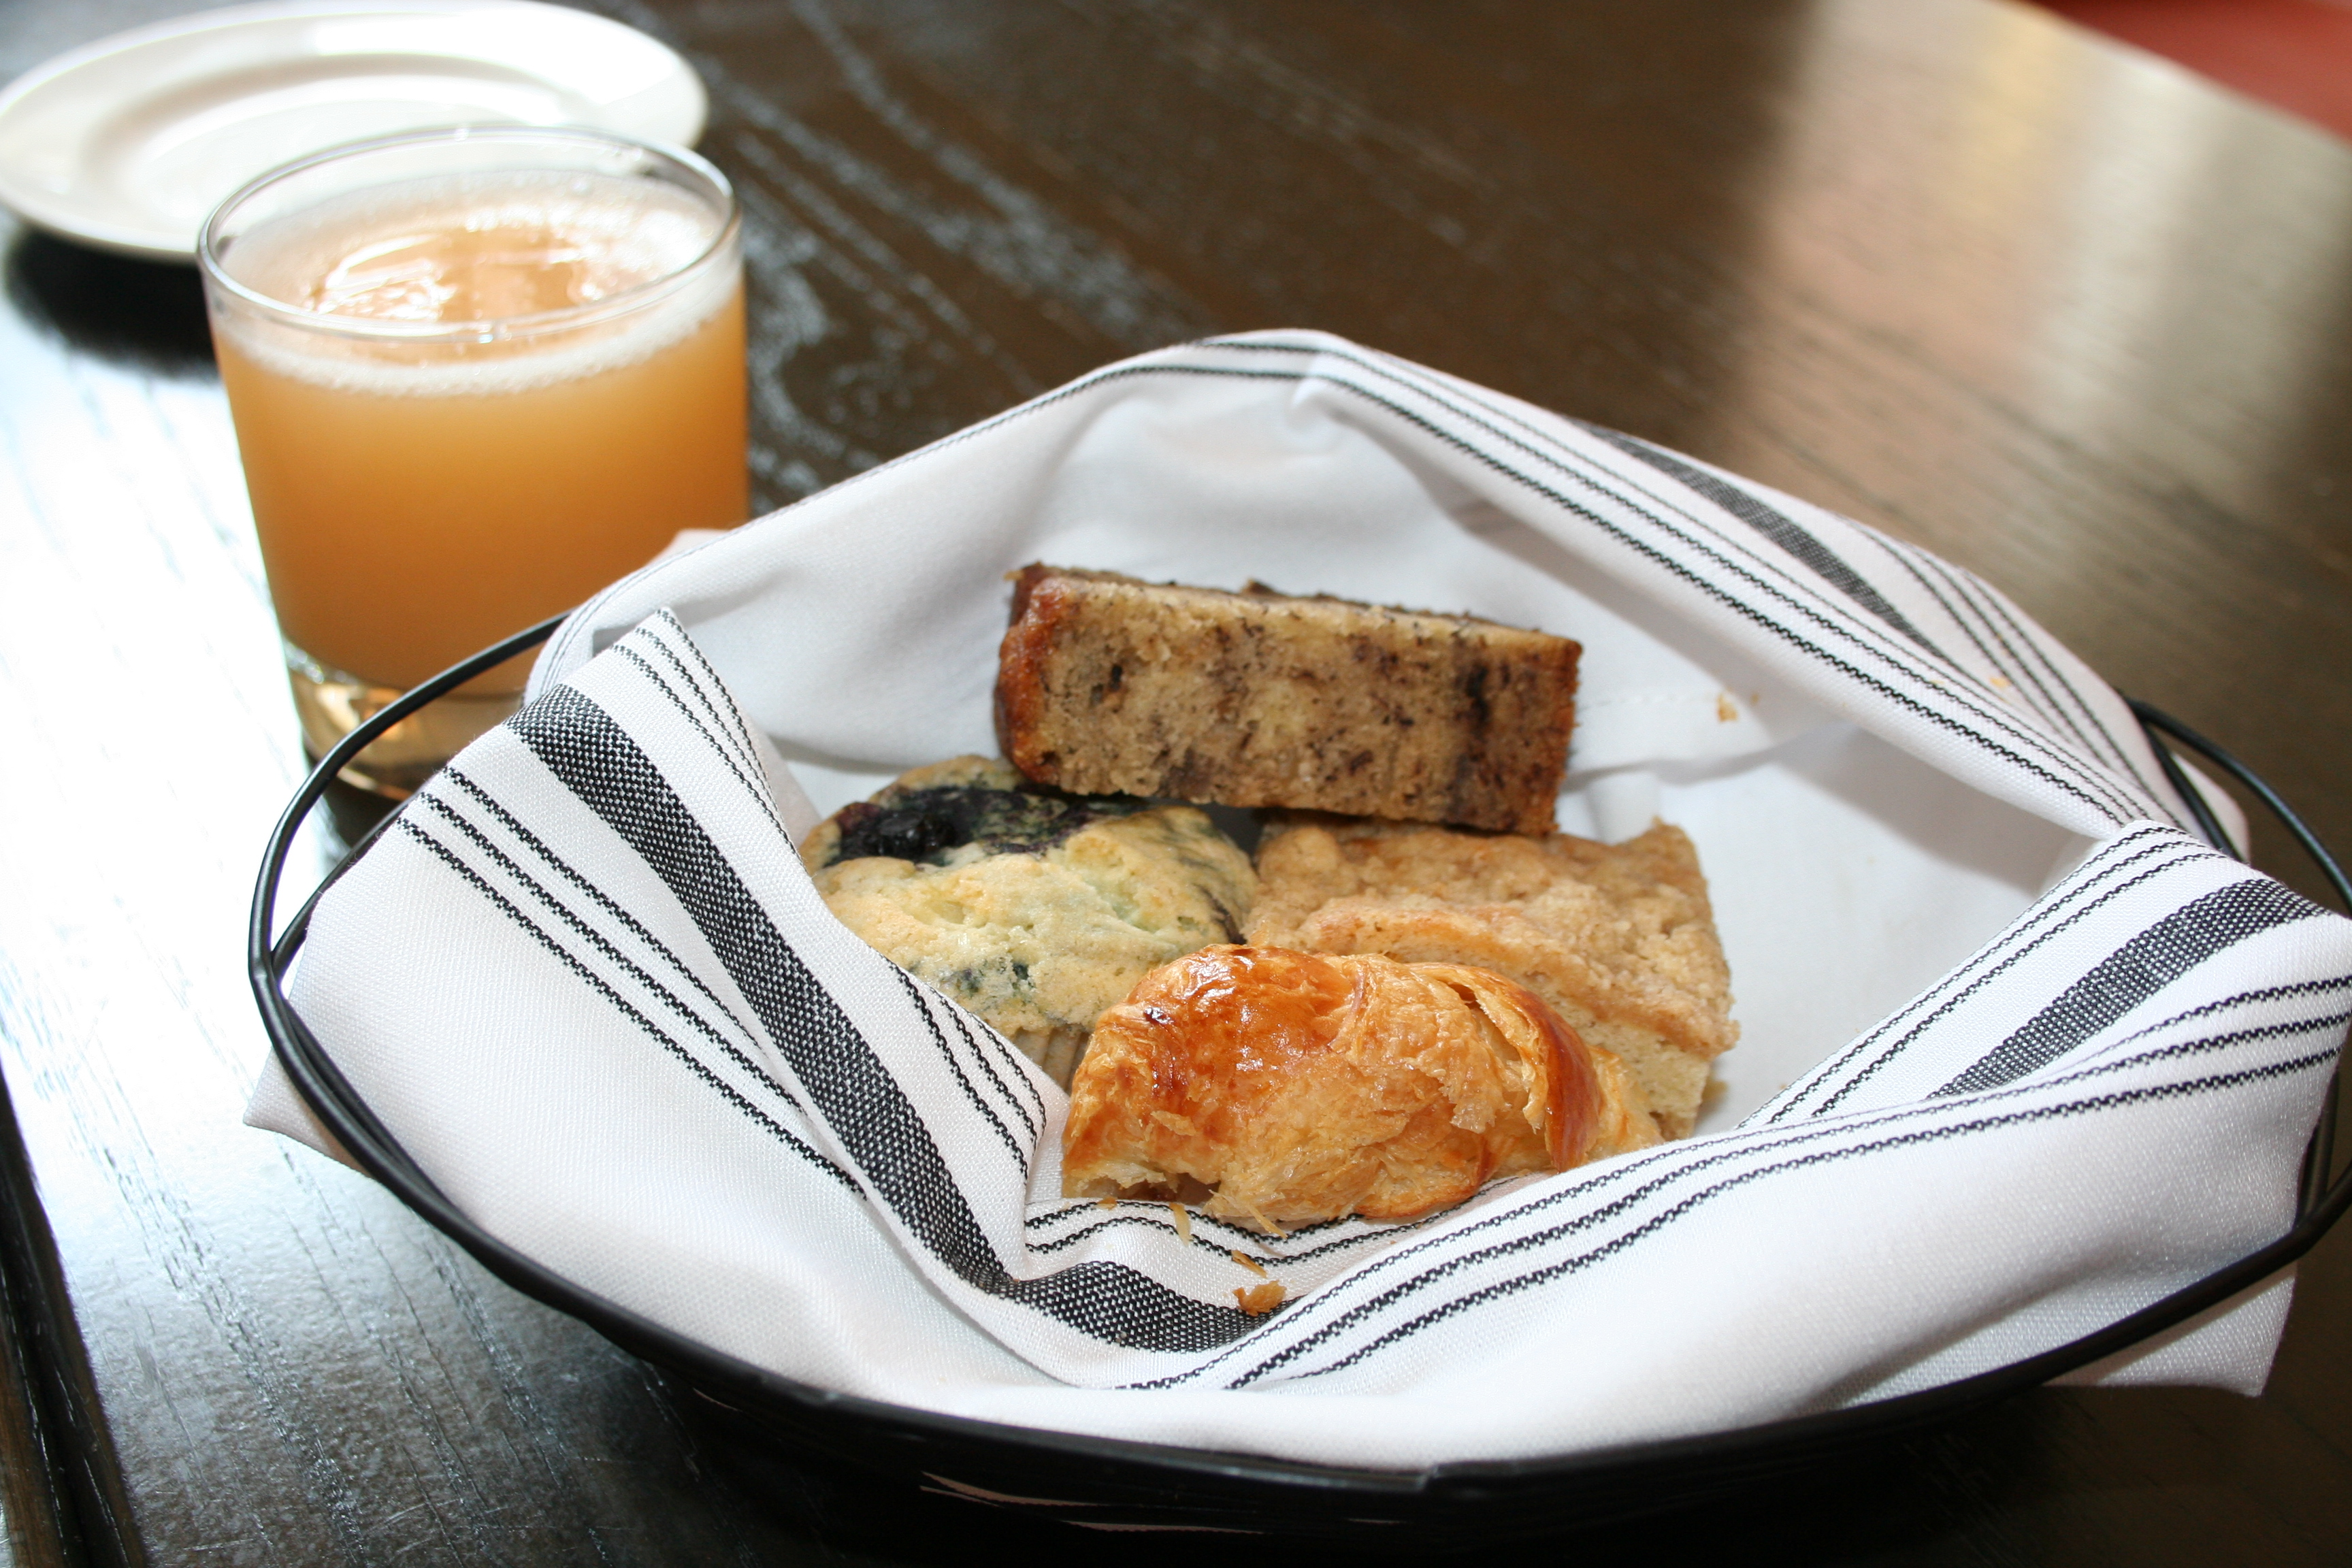 Fresh squeezed juices and pastries from BakeHouse Bakery started our brunch at Bearnaise.  (Photo: Mark Heckathorn/DC on Heels)